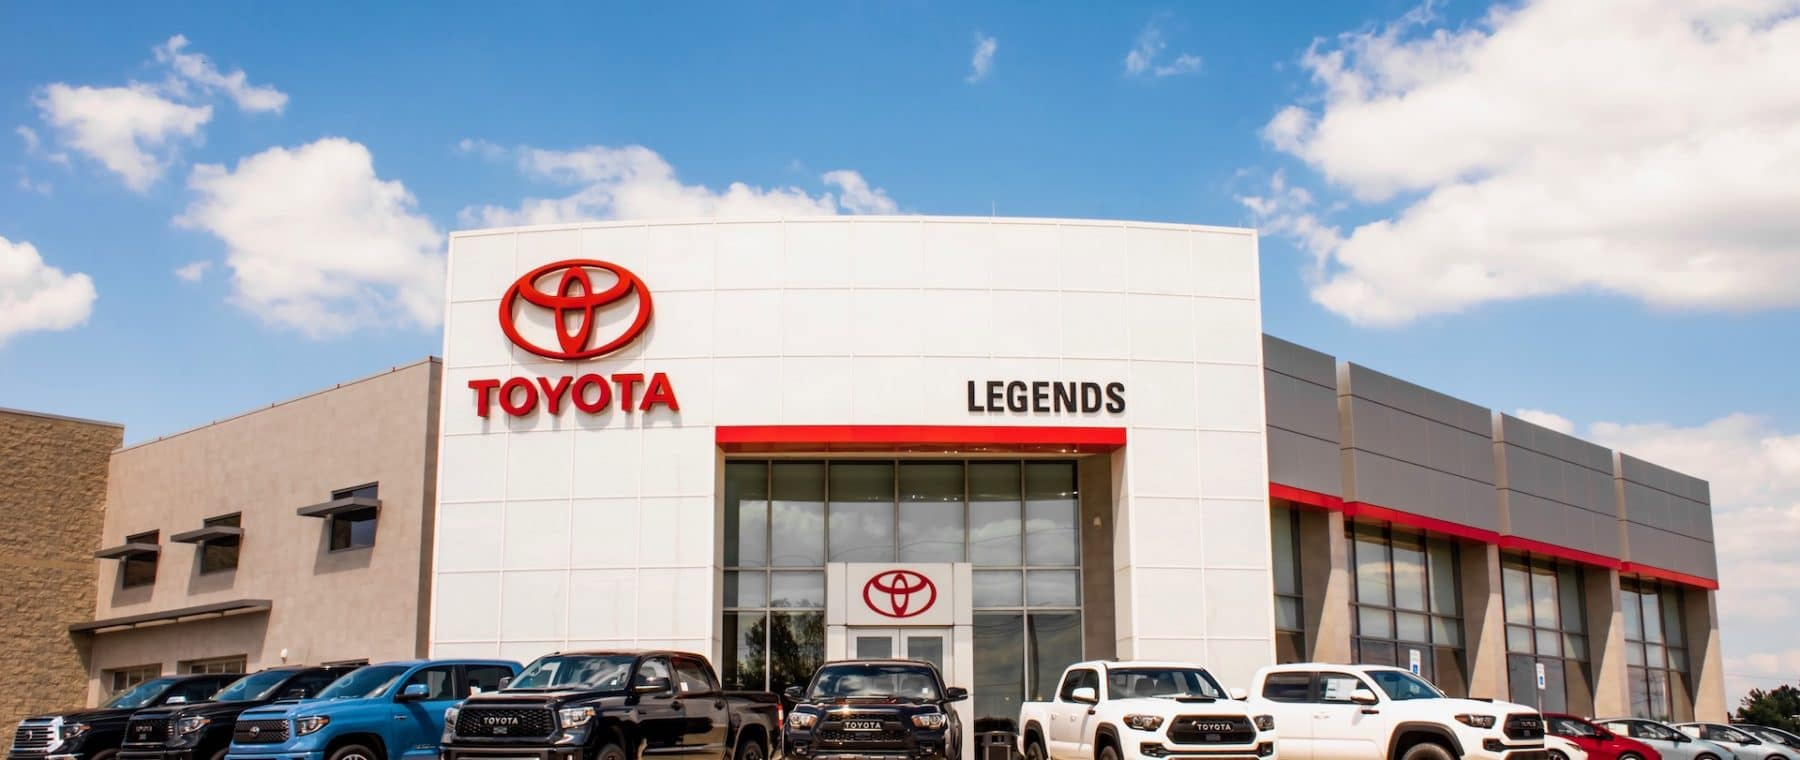 Legends Toyota